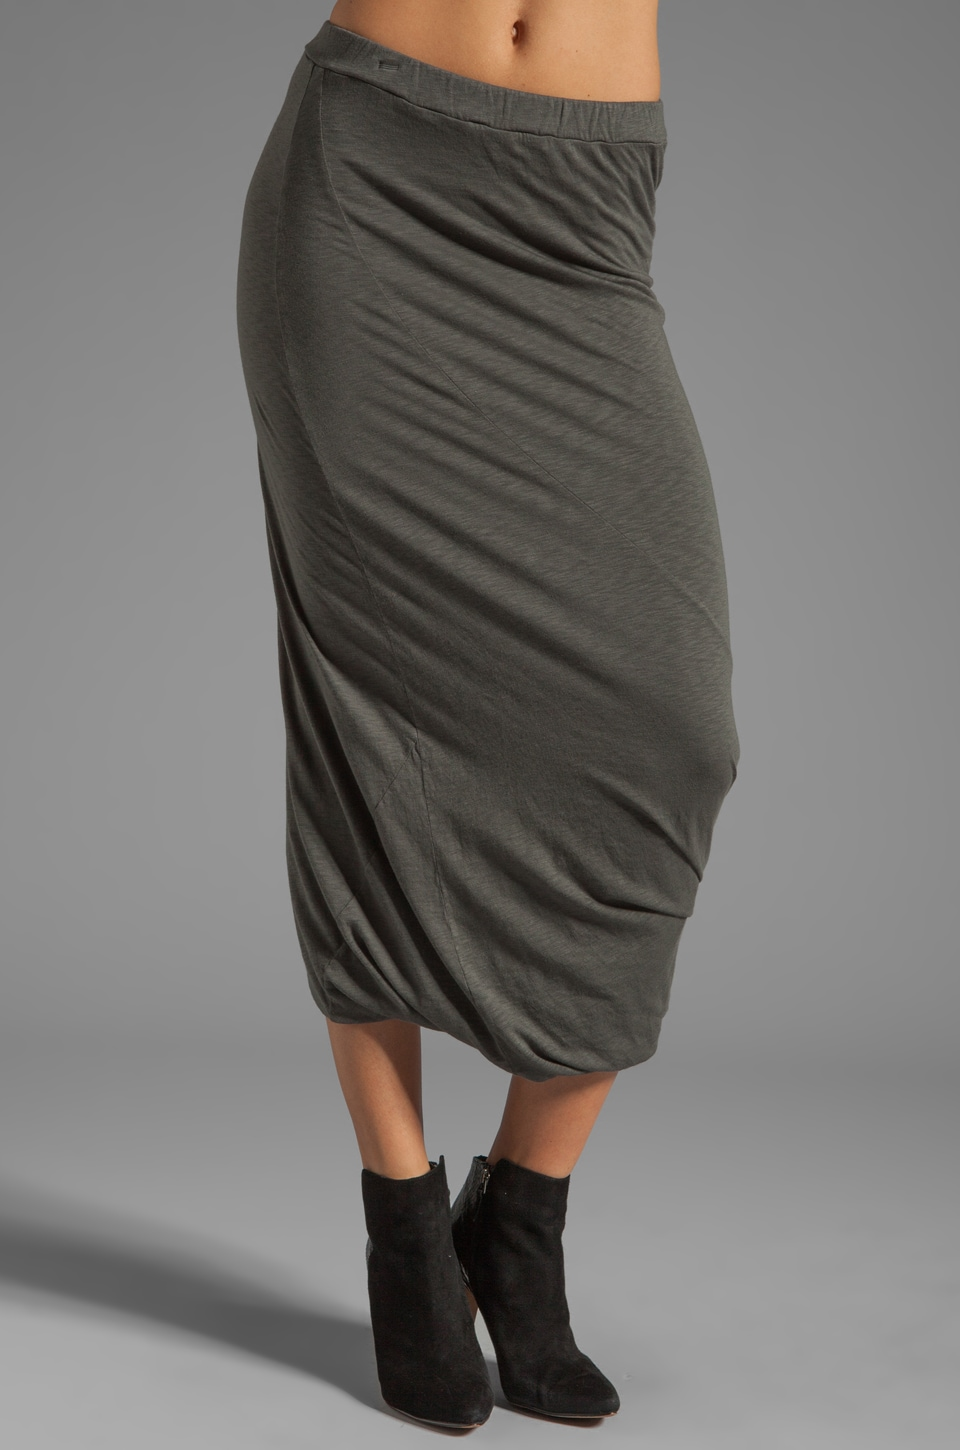 Graham & Spencer Modal Slub Drape Skirt in Storm